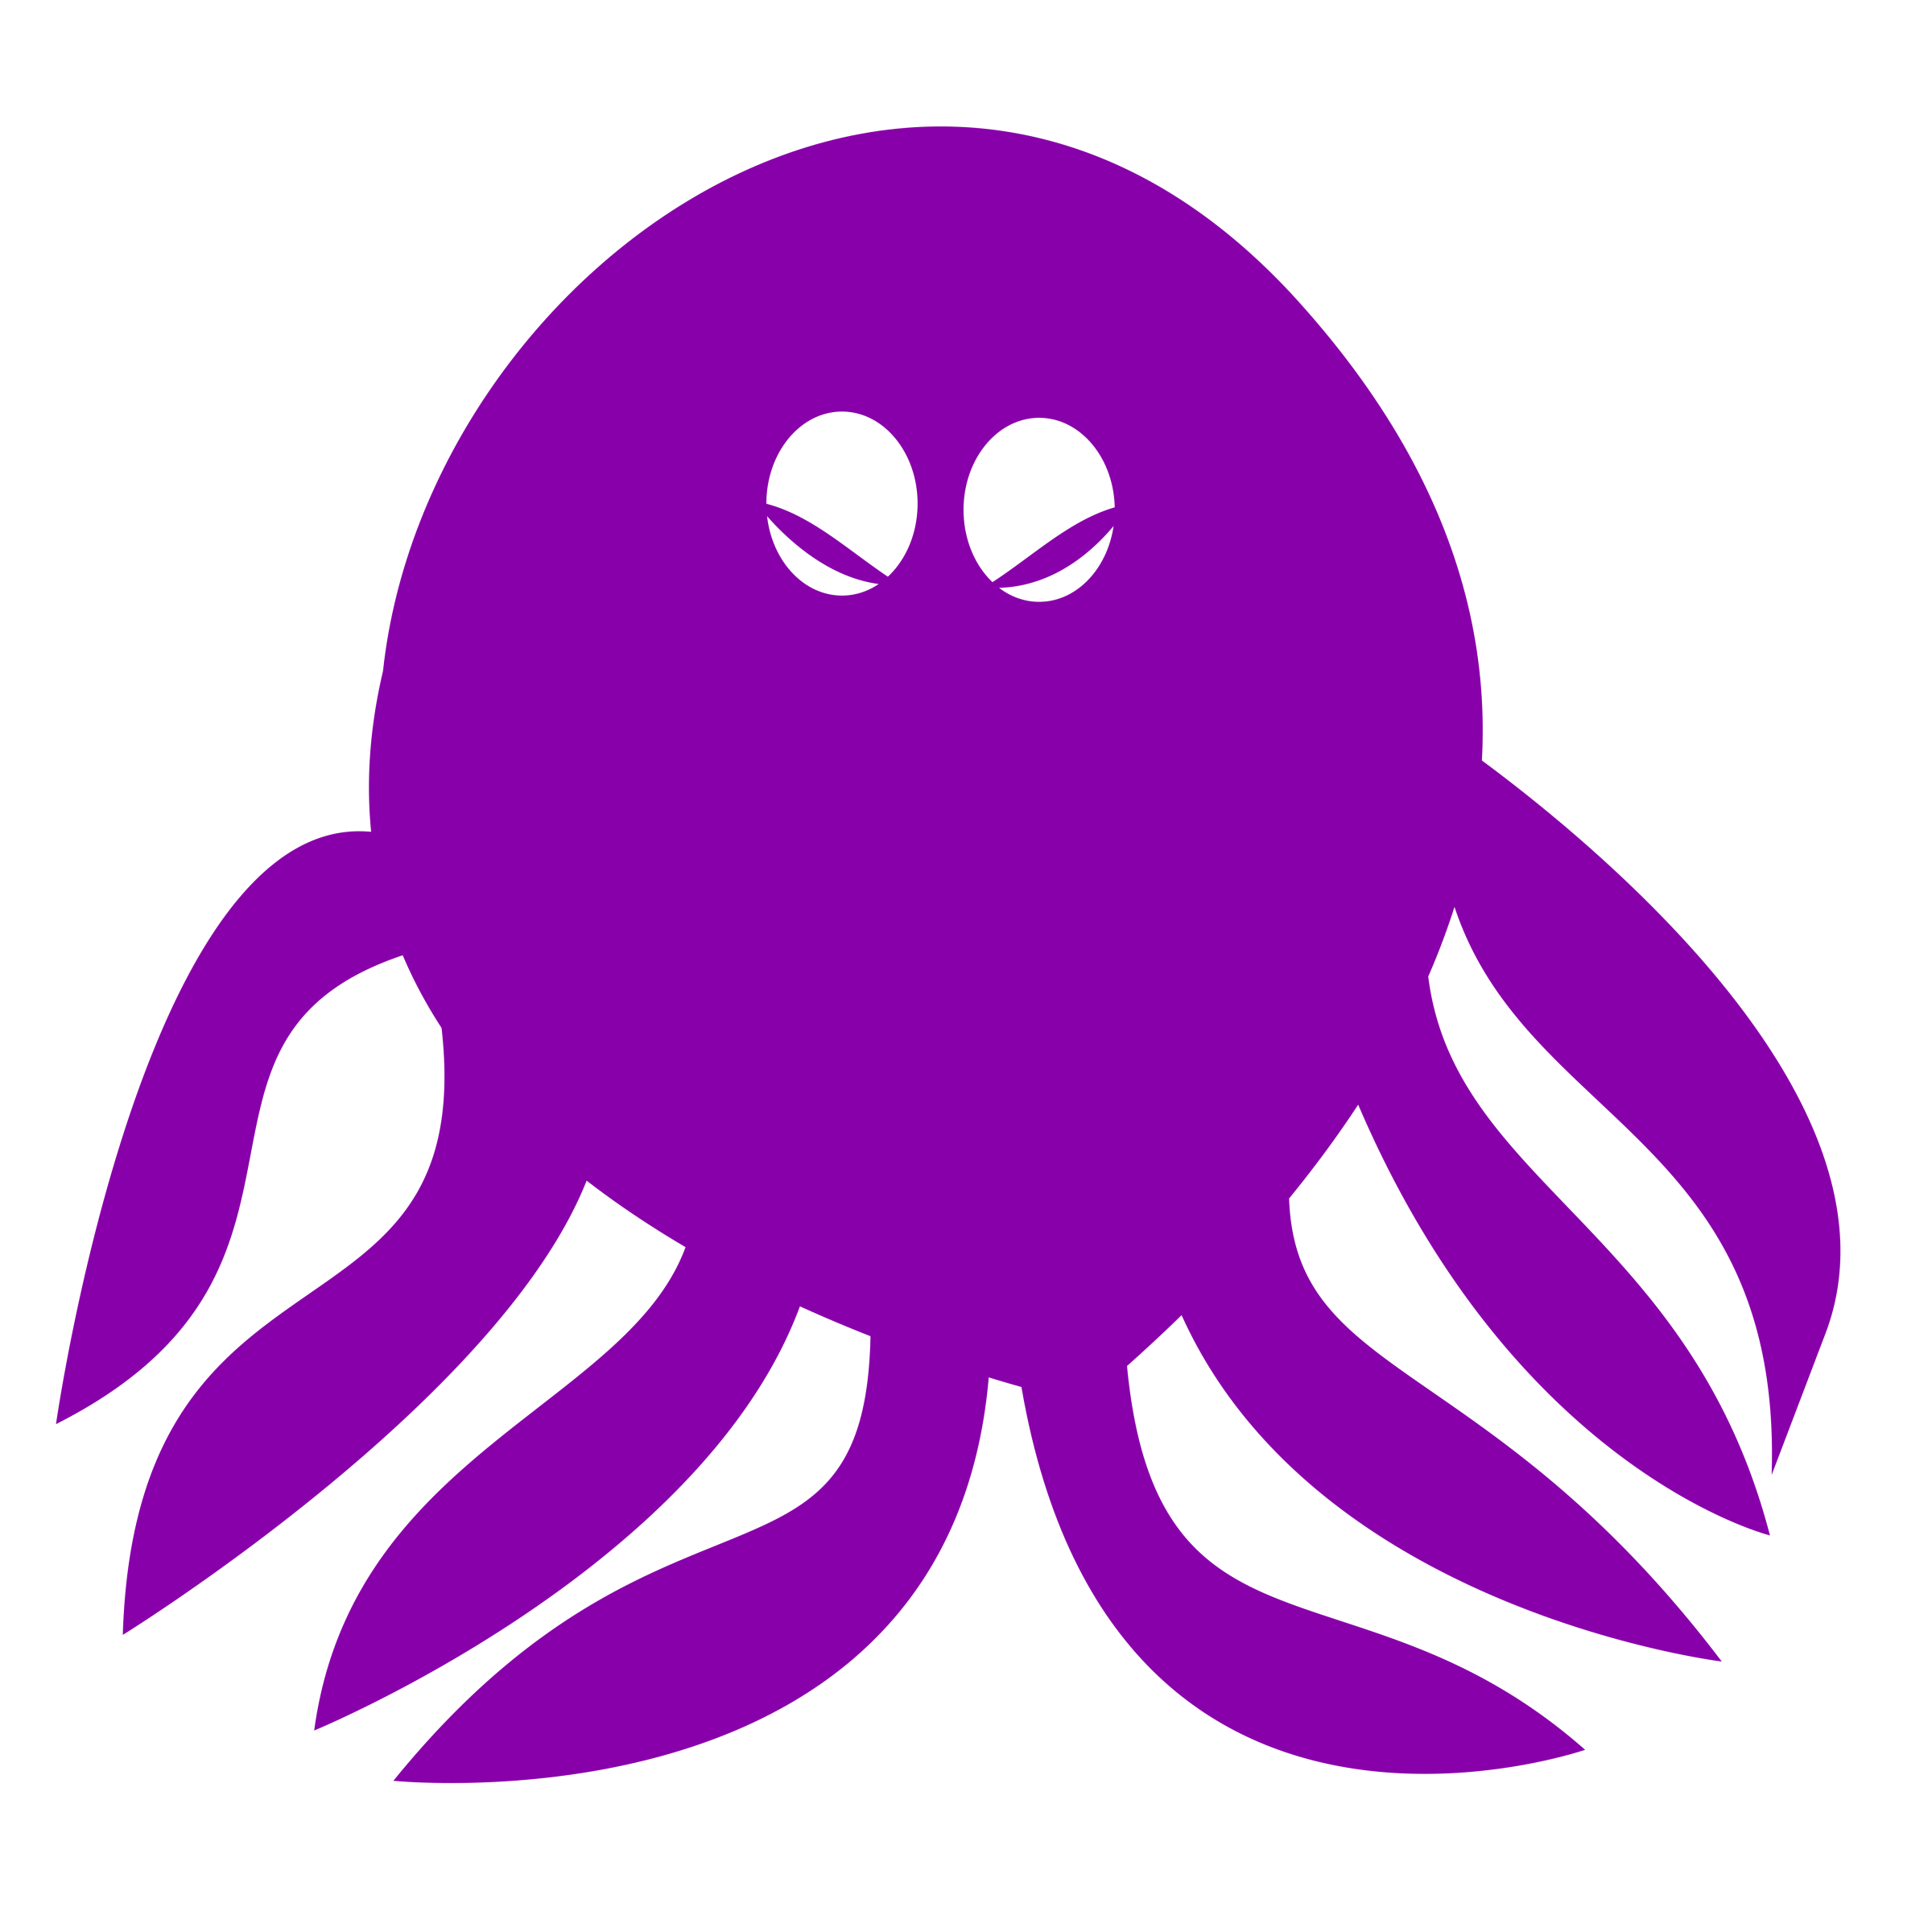 Octopus- one color, highly simplified by oldifluff